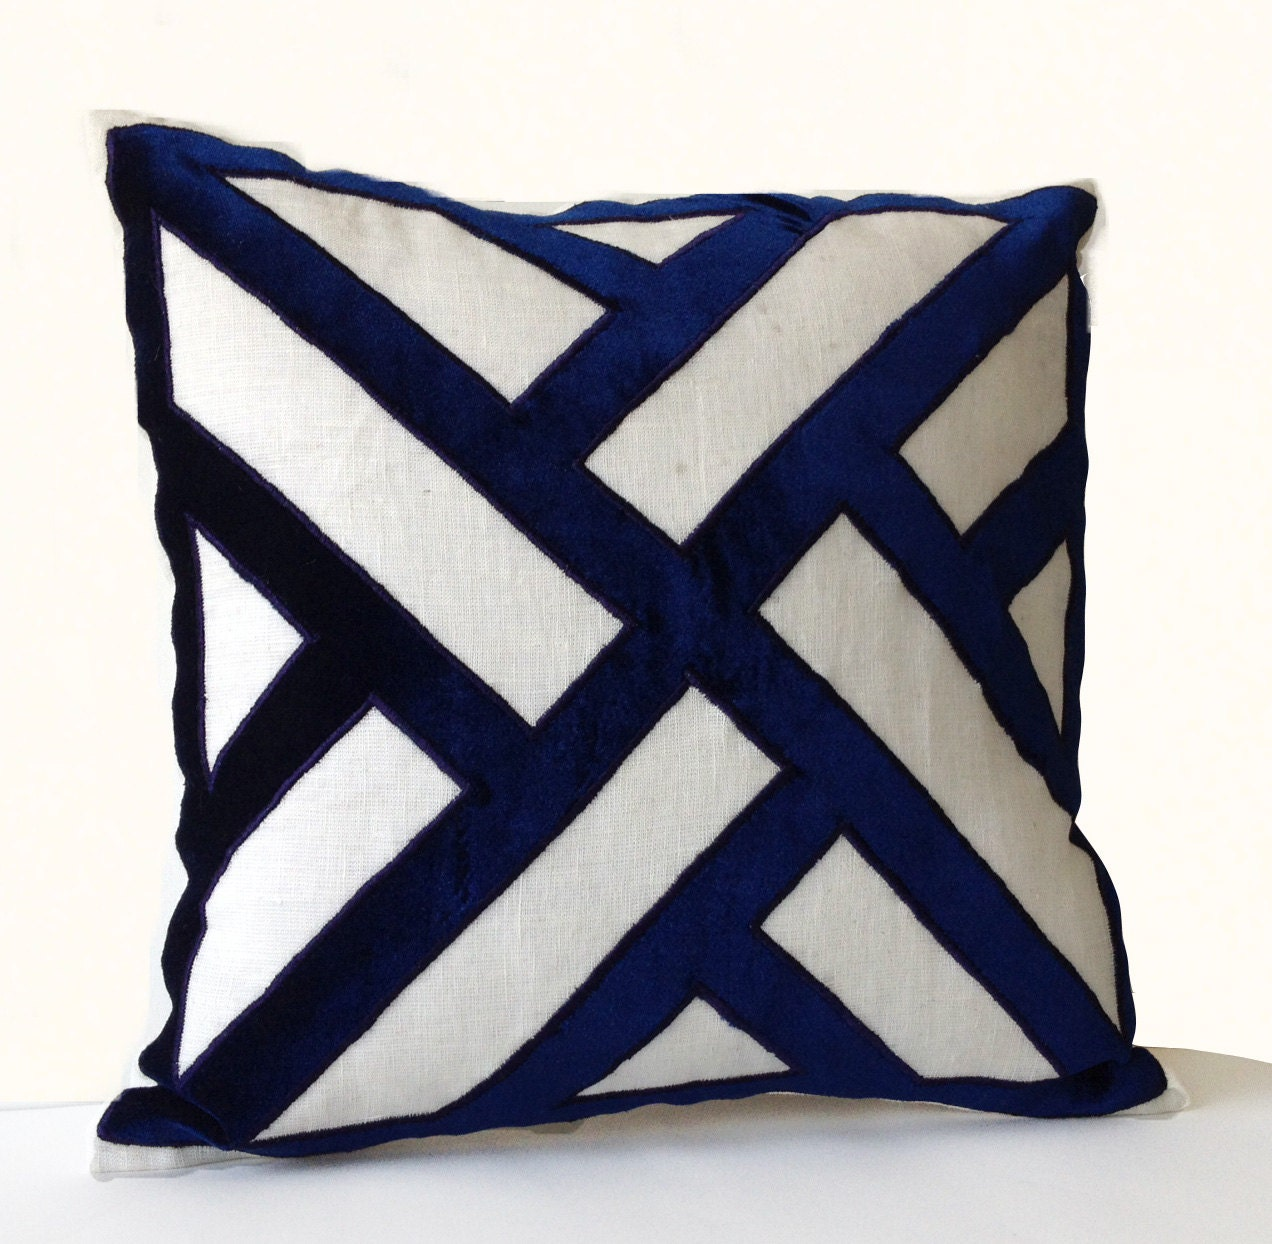 ivory linen navy blue velvet applique pillow cover geometric - 🔎zoom